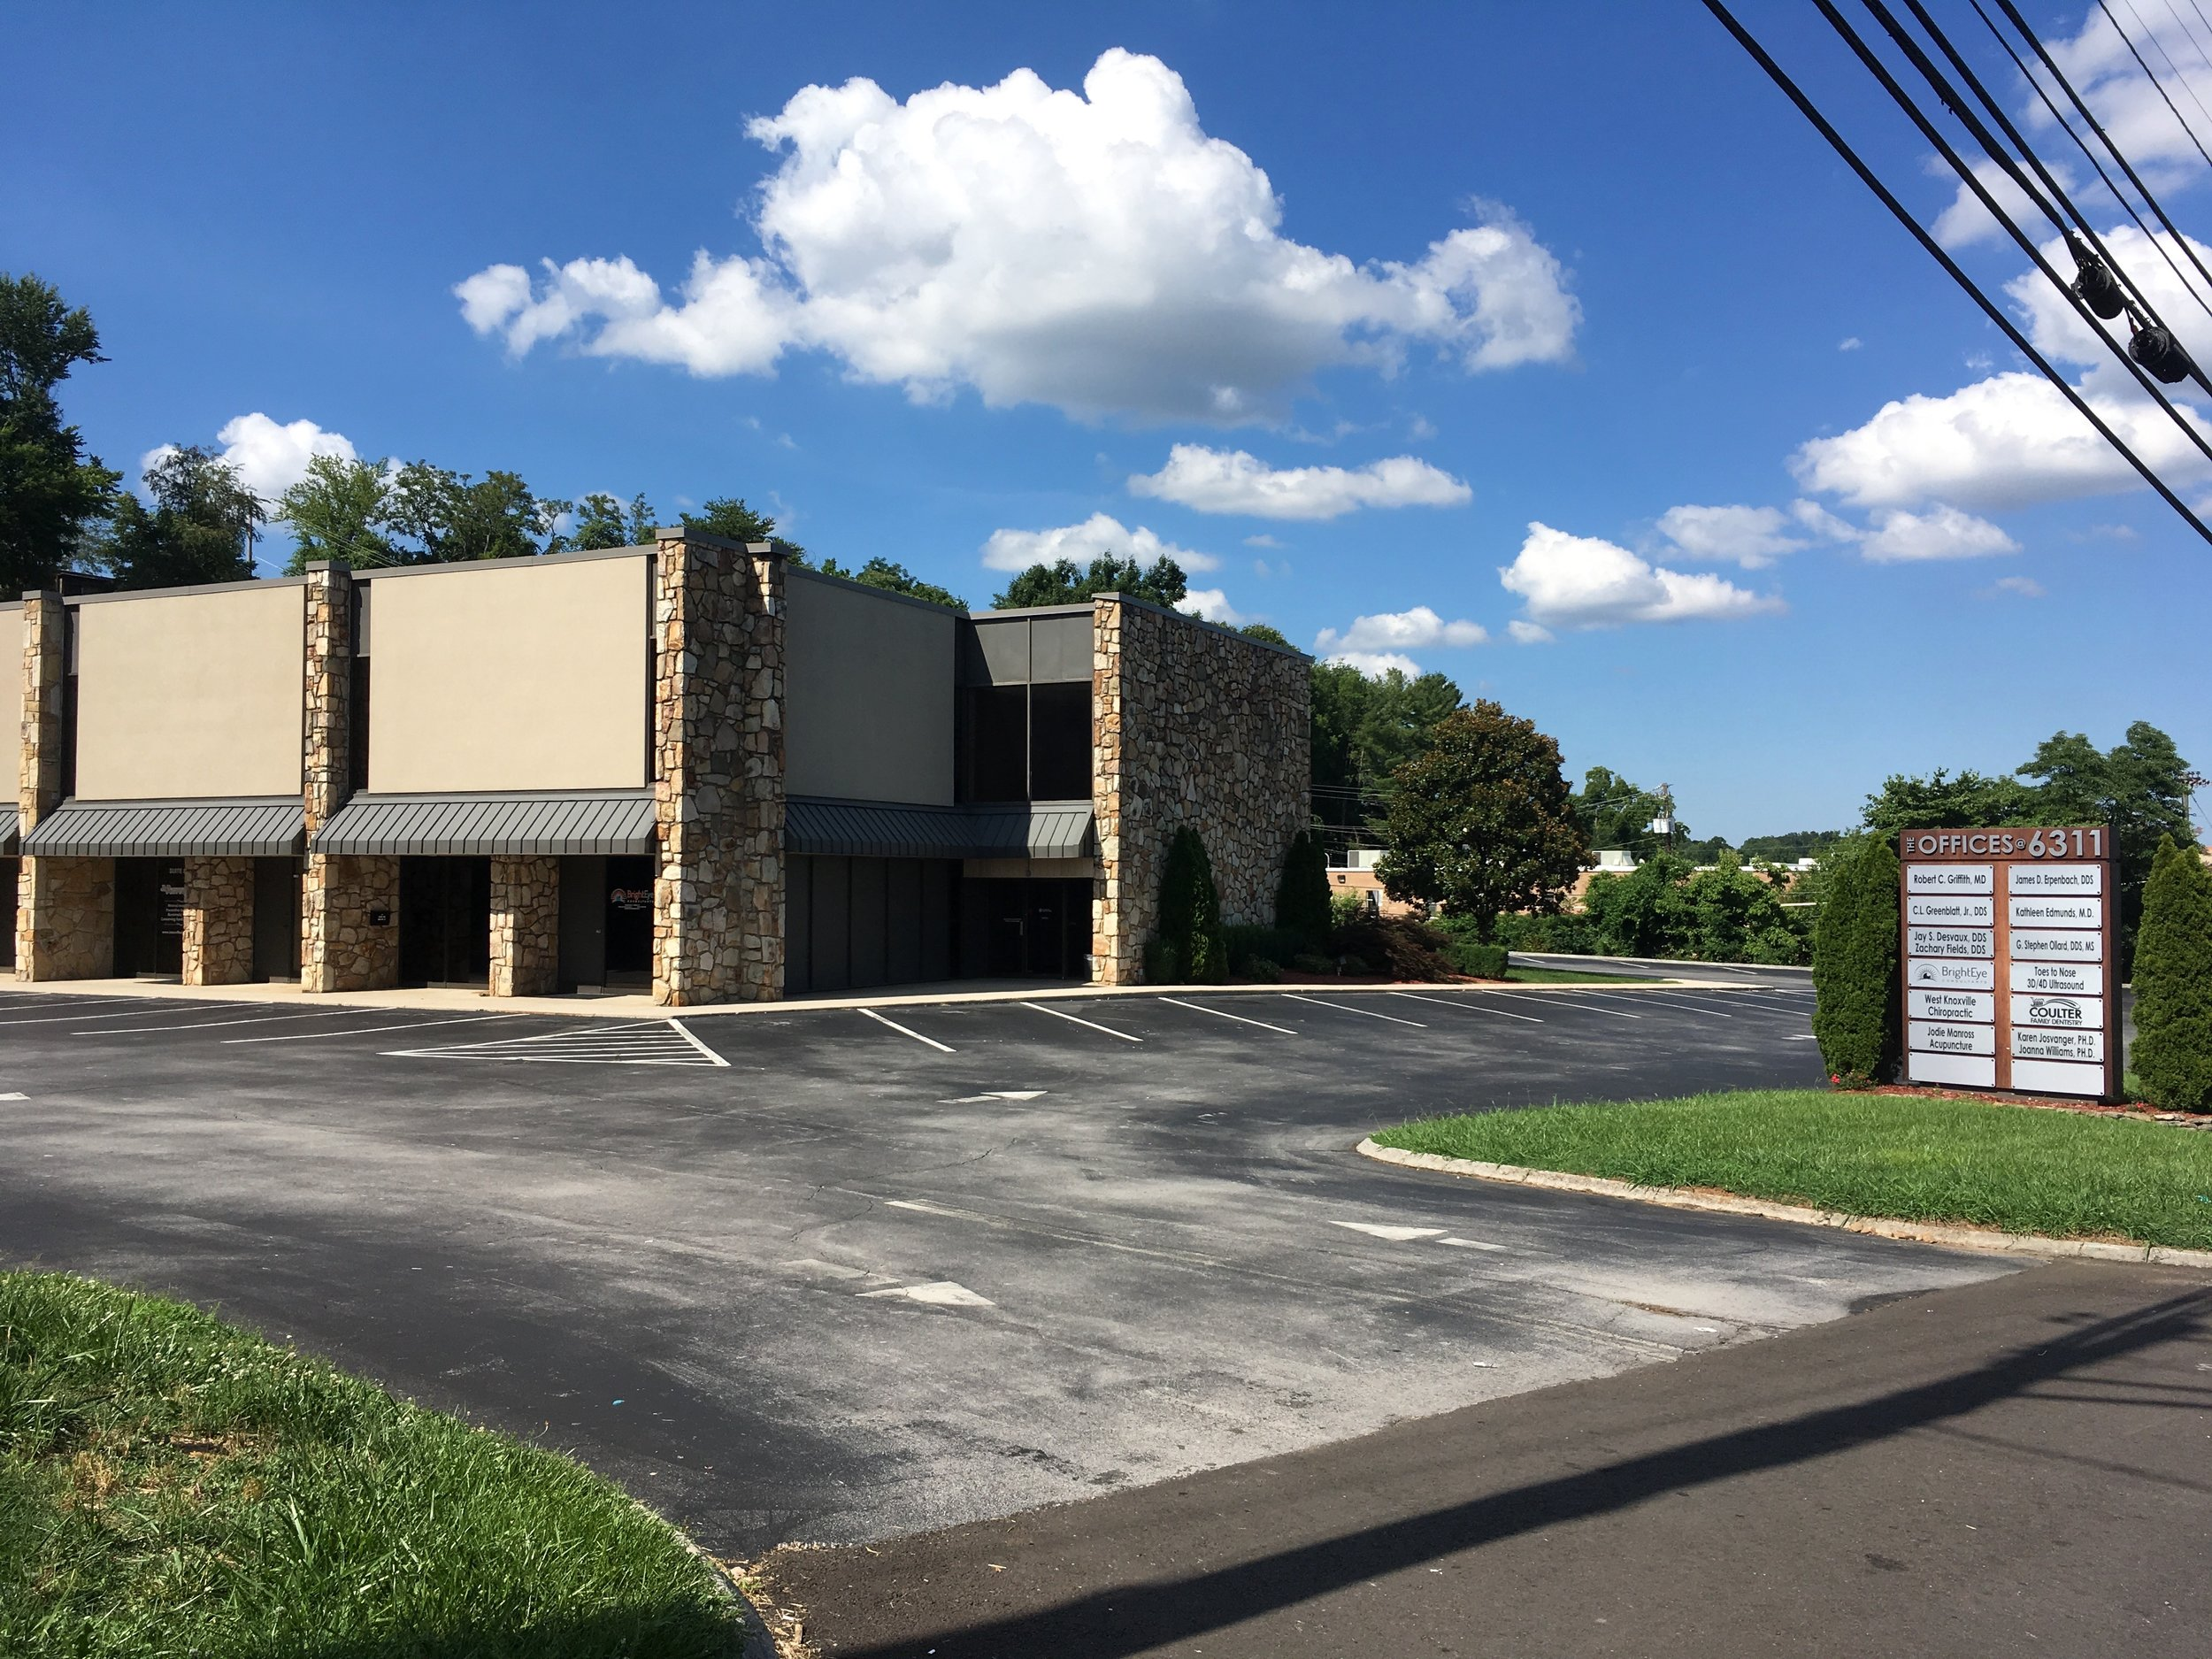 6311 Kingston Pike, Suite 6W, Knoxville, TN 37919